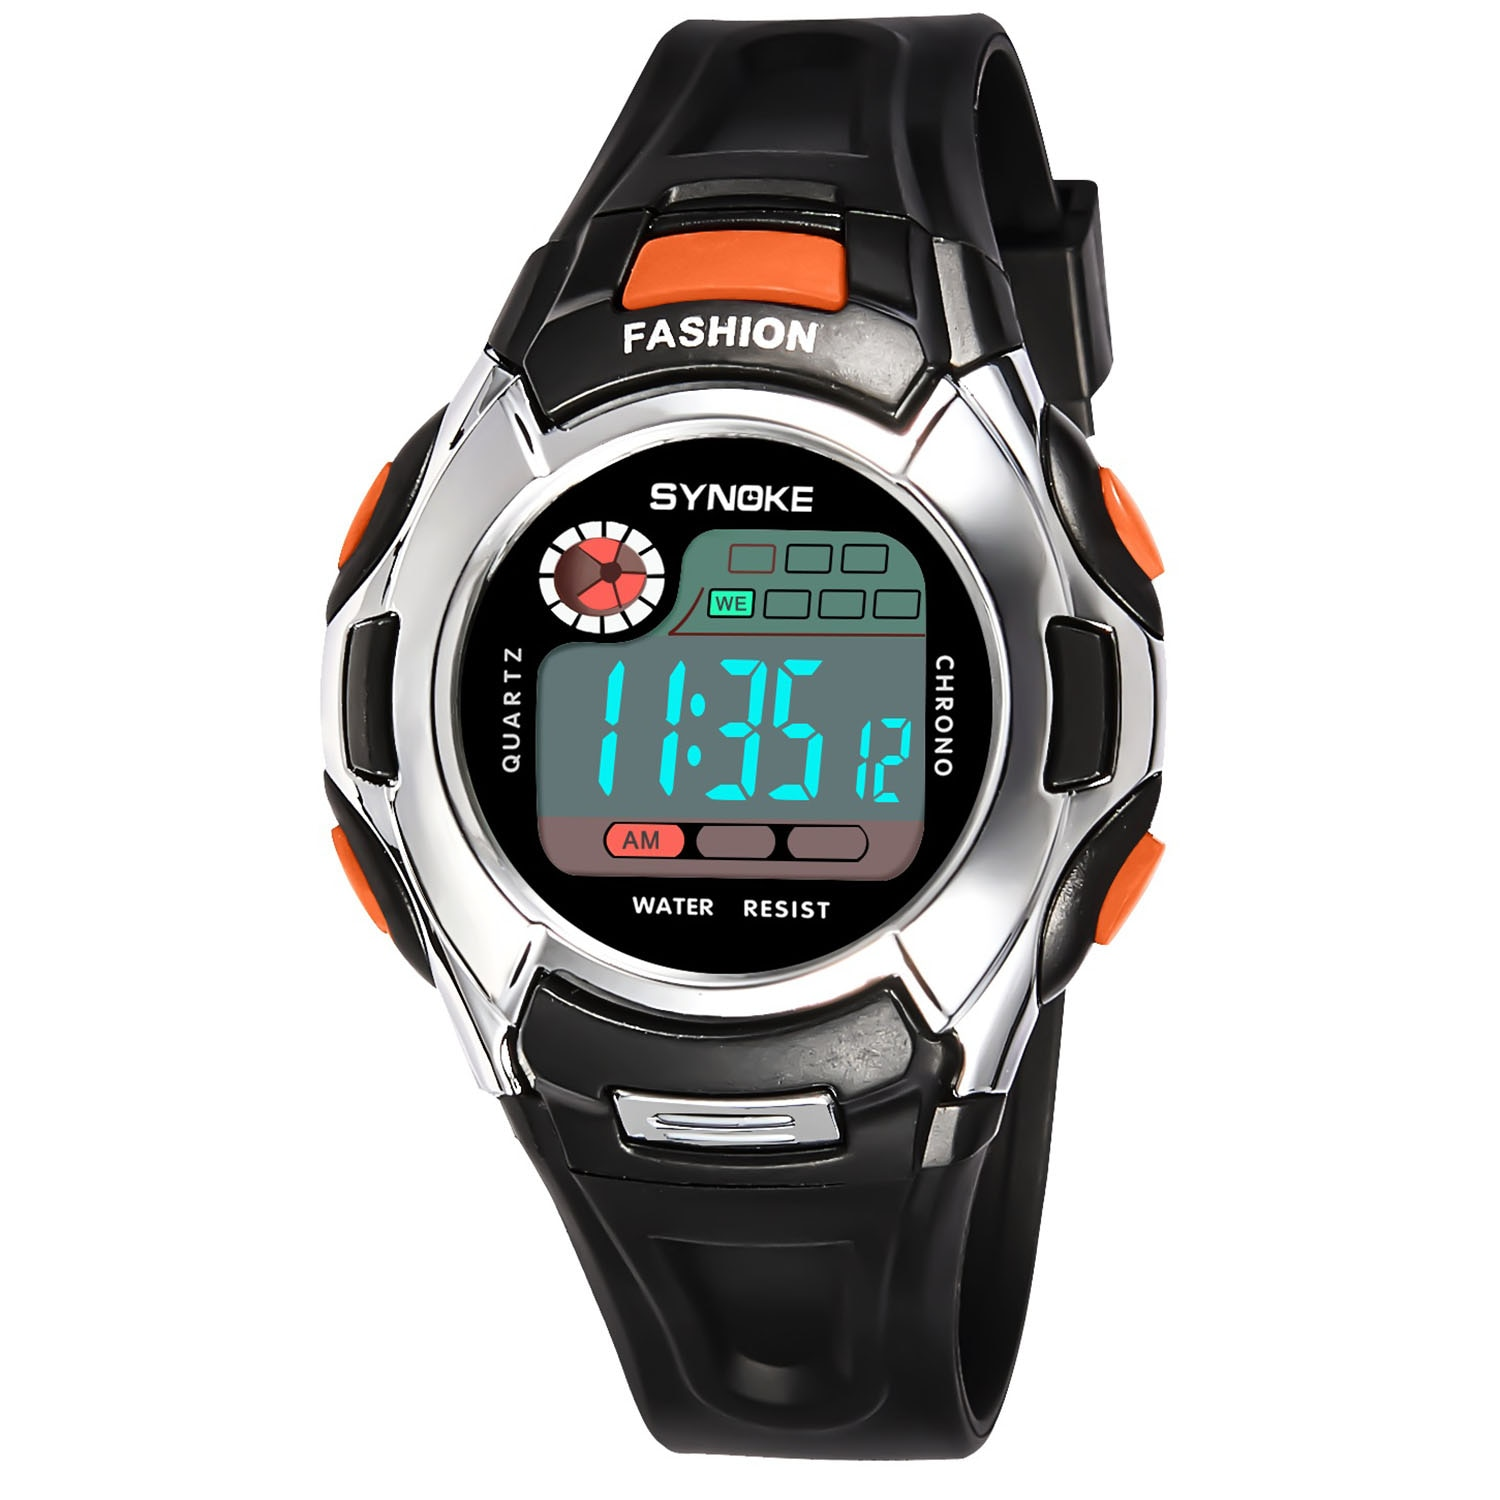 ohsen brand mens boys digital sports watches waterproof rubber band wristwatch led colorful backlight red army kids watch gift Kid Children's Sports Watches Boys Waterproof Kids LED Digital Watch For Girls Electronic Clock Wristwatch Chronograph gift male